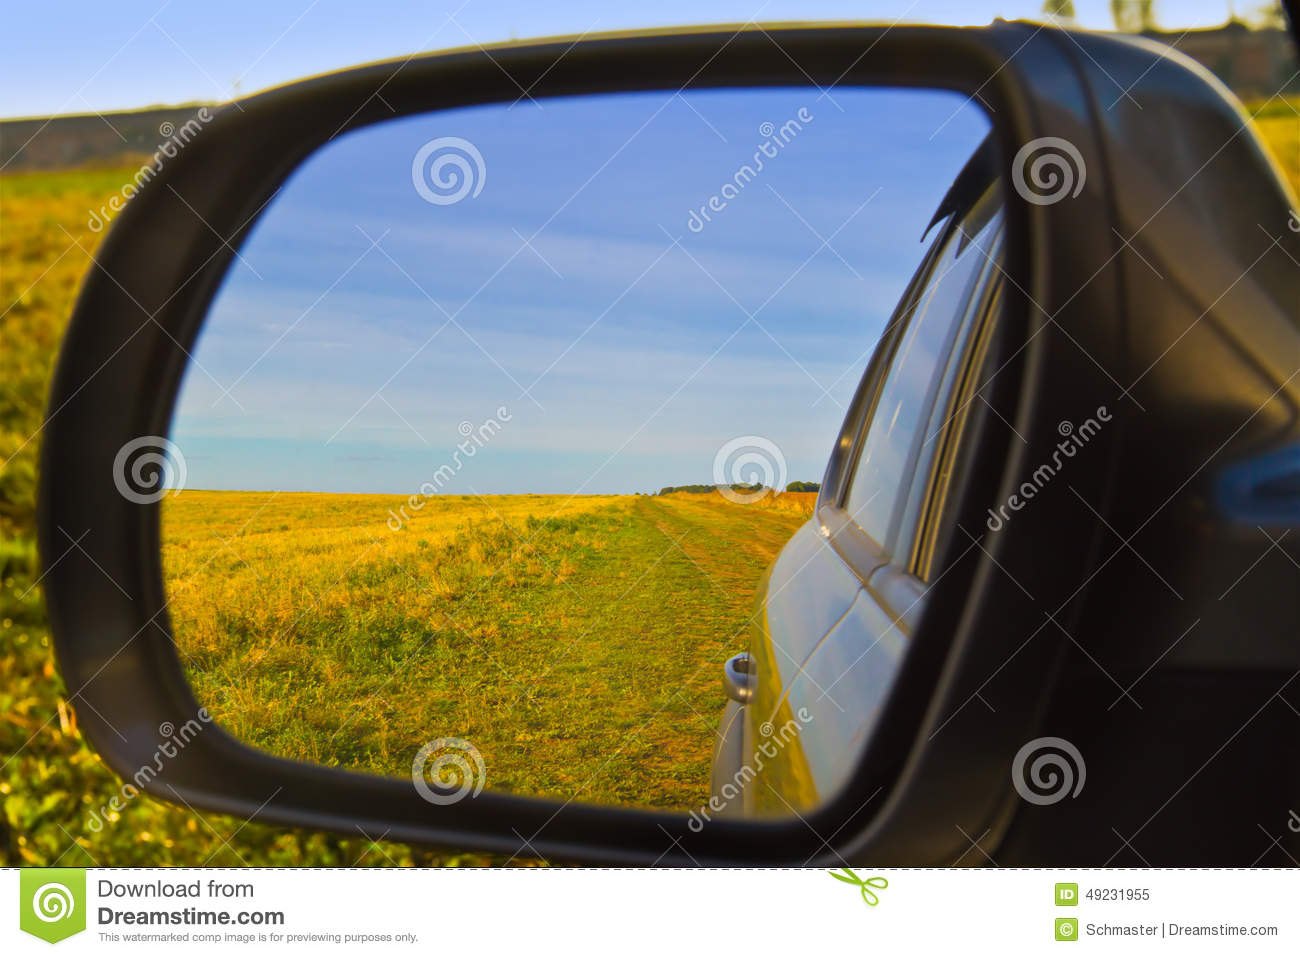 looking out car window with reflection in side mirror